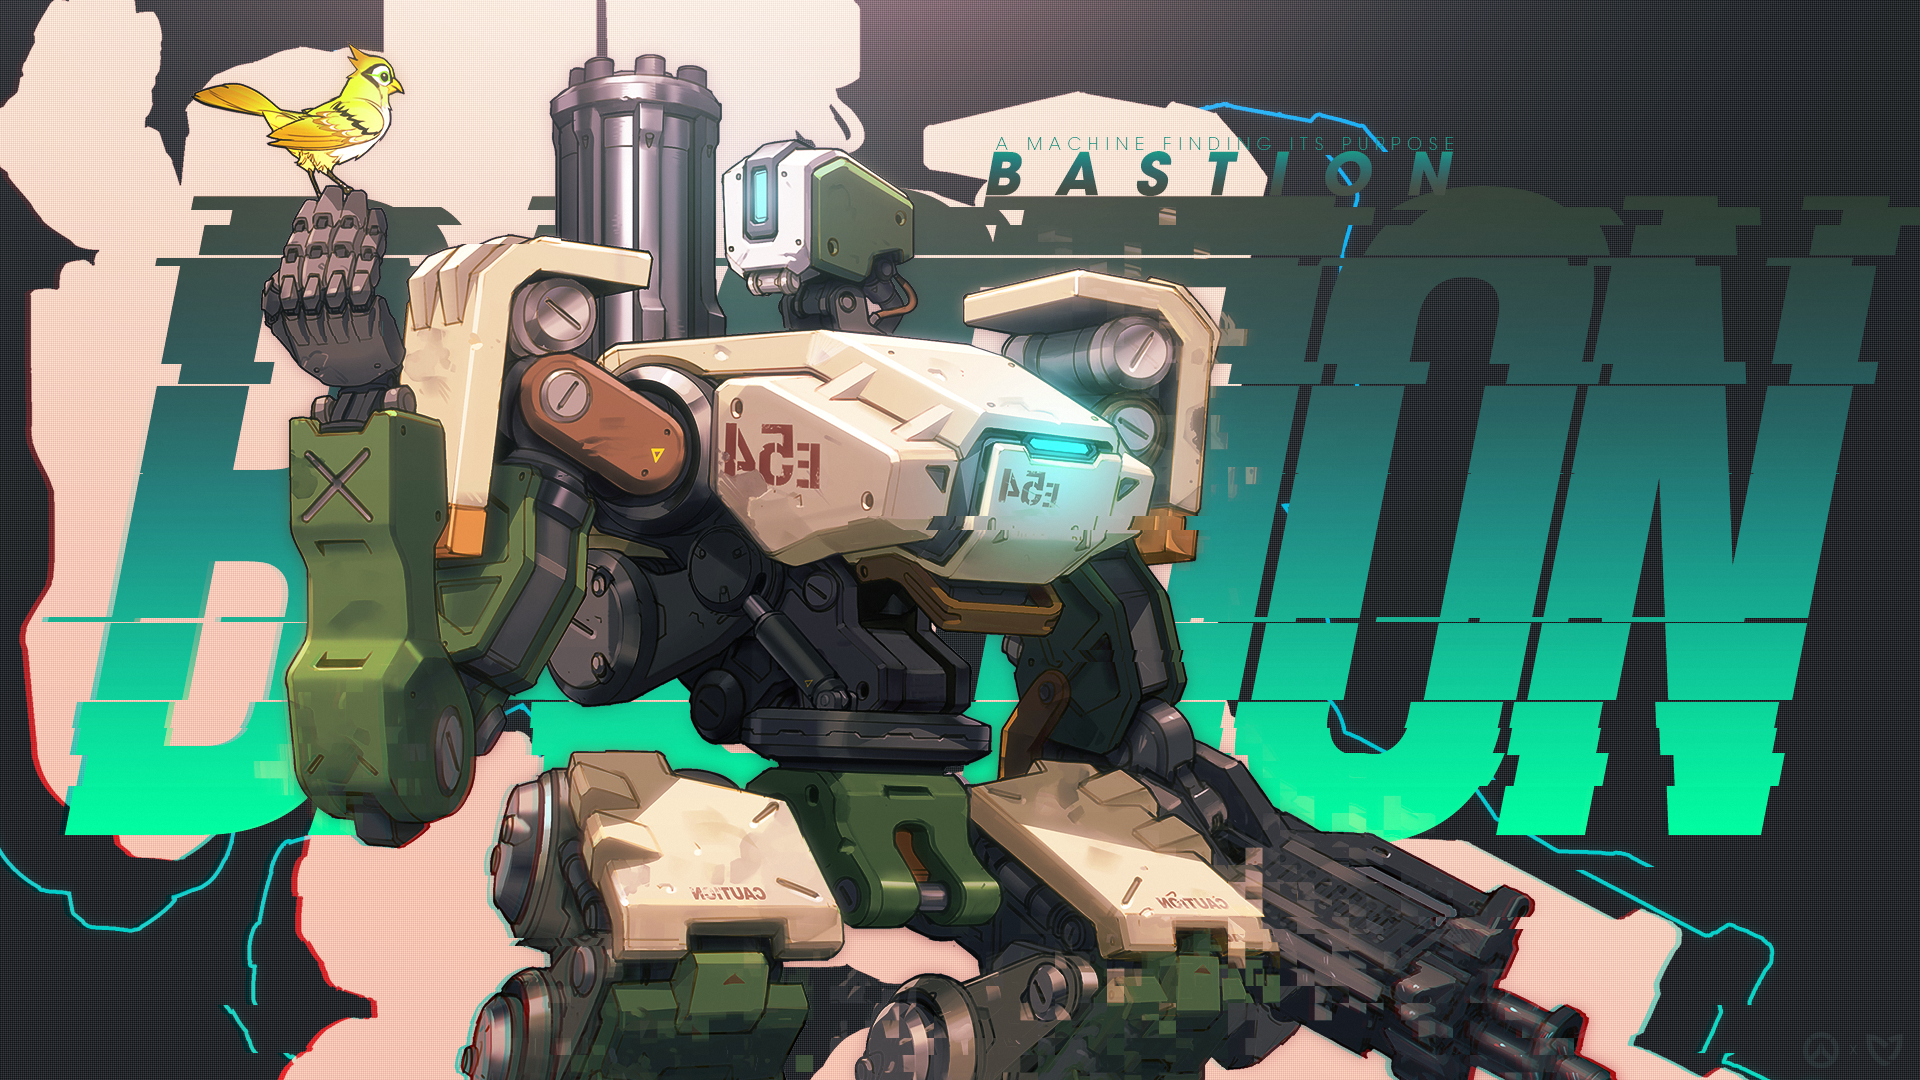 Overwatch Bastion Wallpaper By Mikoyanx Png 1920 1080 Overwatch Wallpapers Overwatch Bastion Overwatch